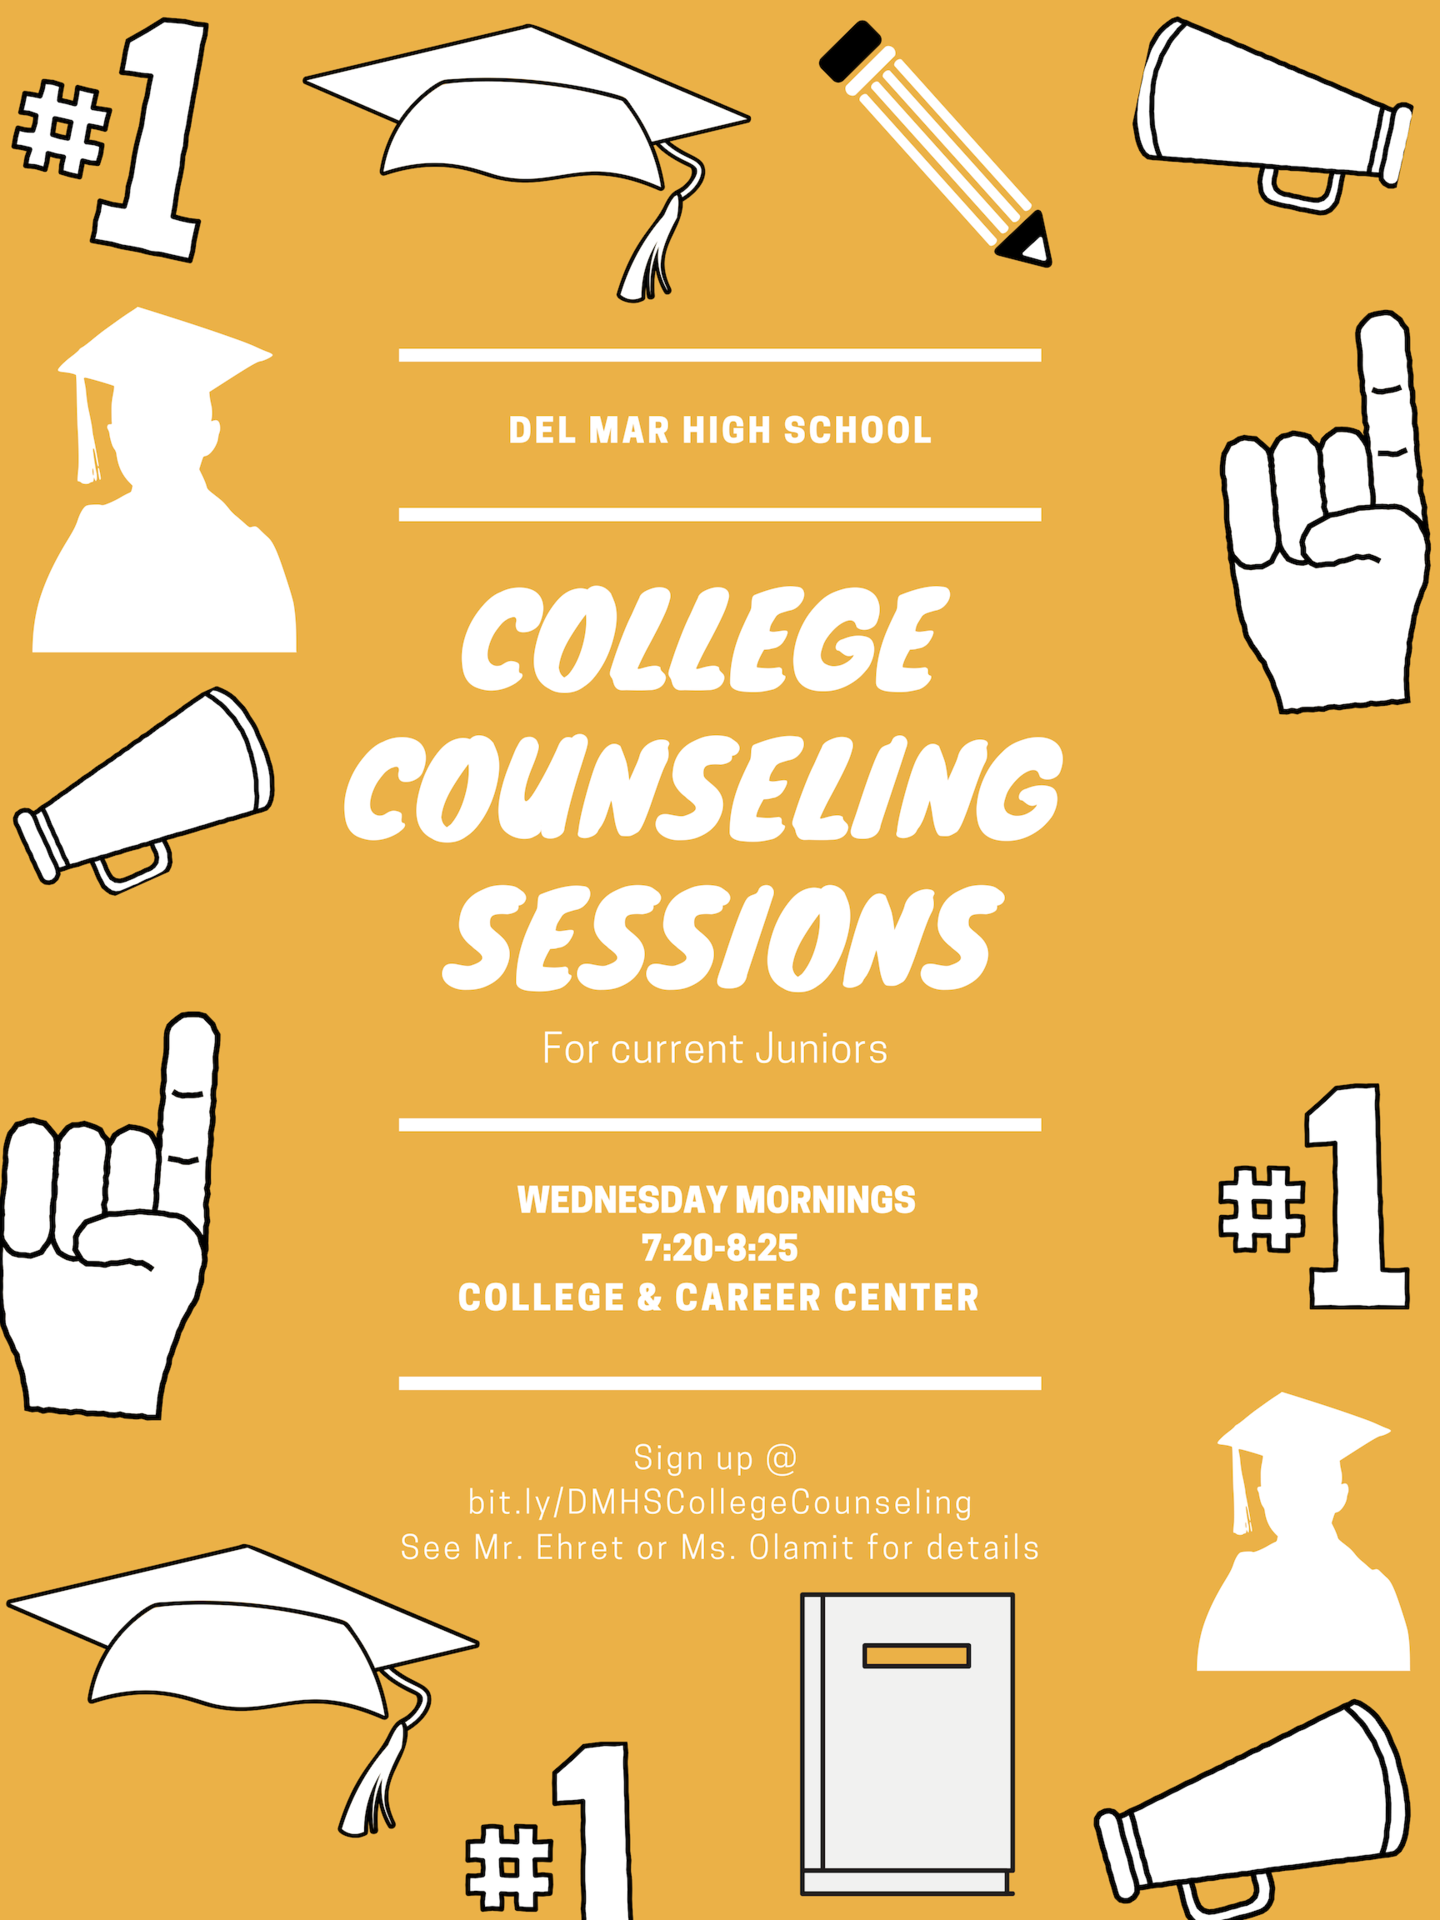 image of college counseling sessions flyer